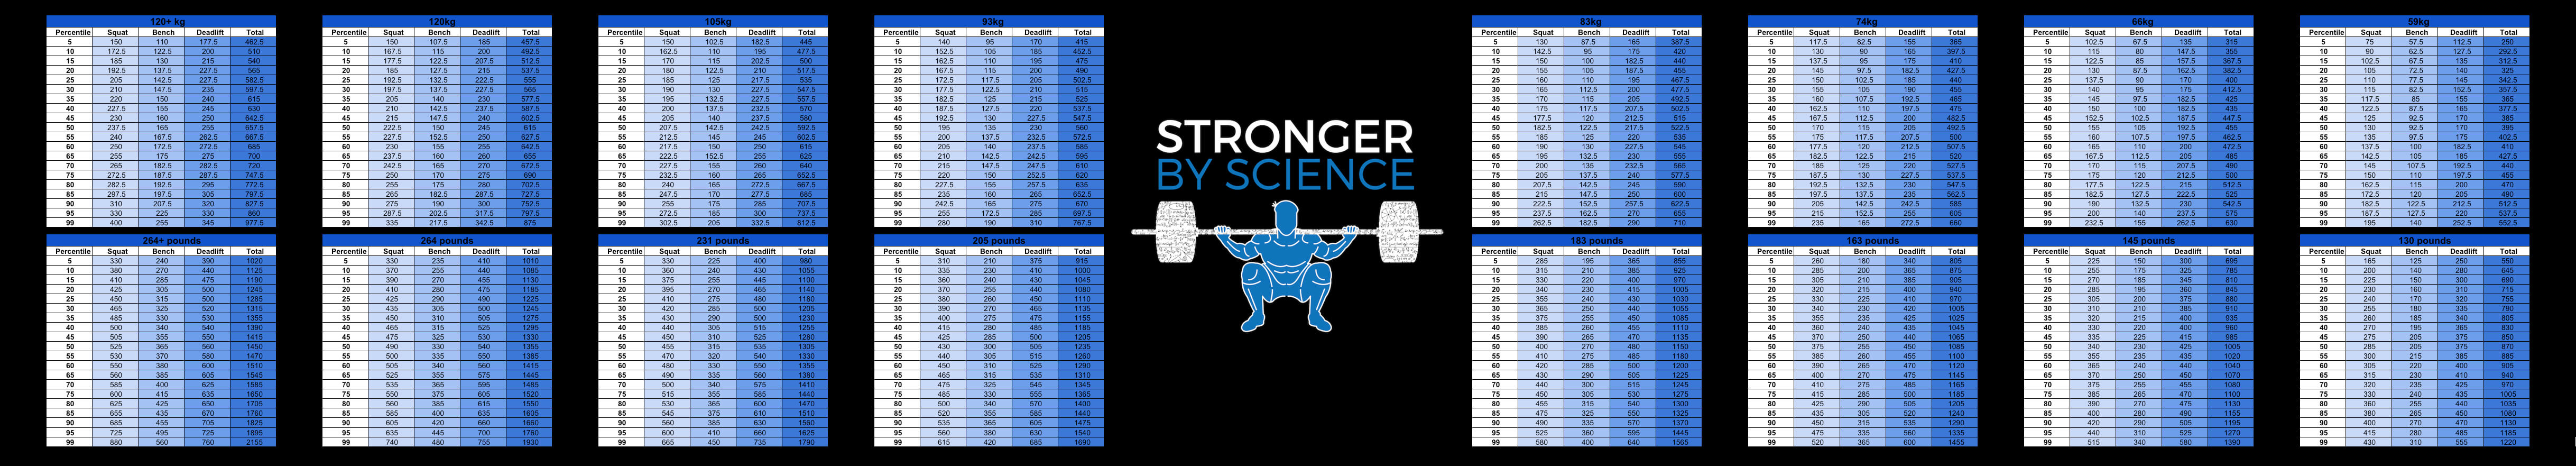 what is strong – men's strength percentiles